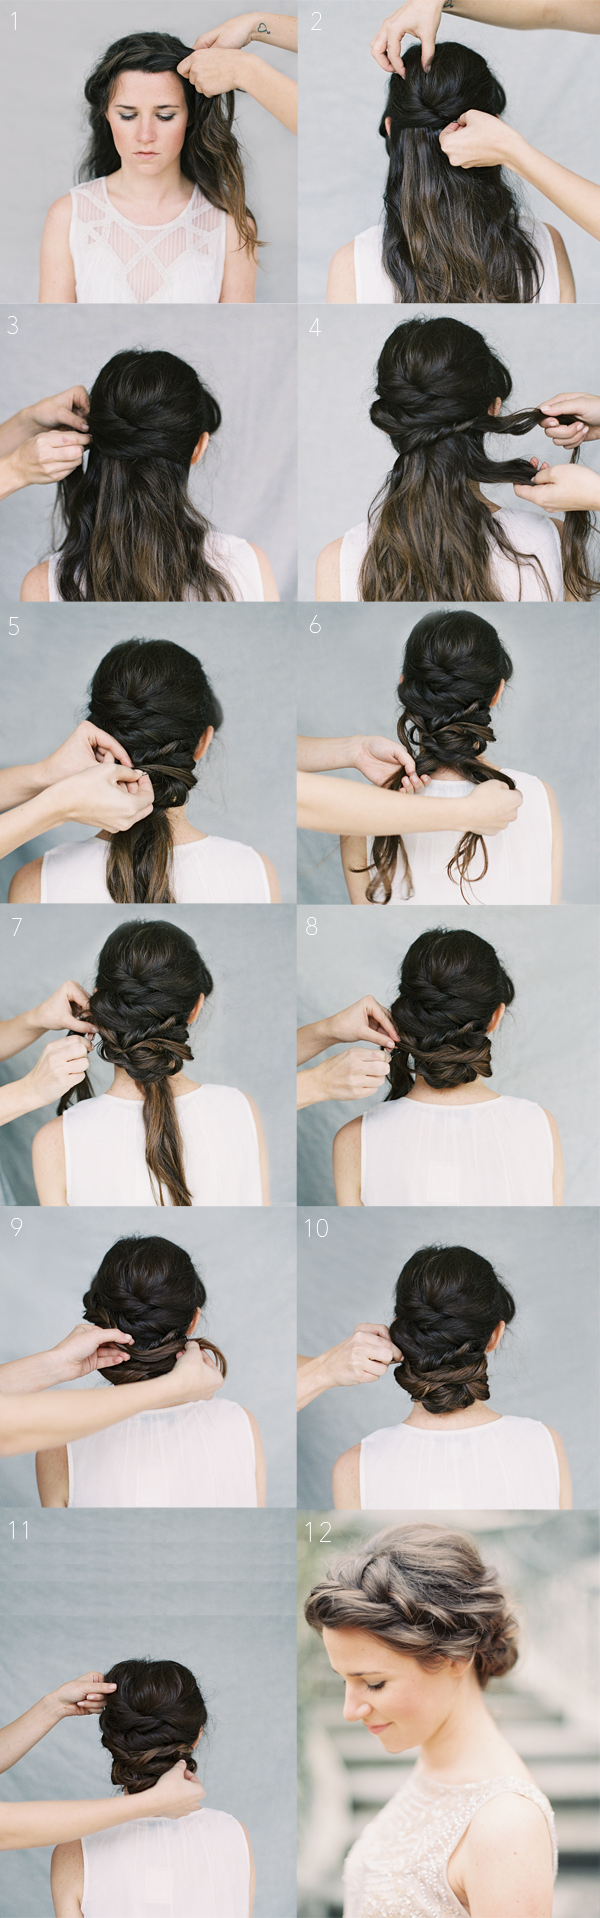 Very Best Braids Hairstyles for Long Hair Steps 600 x 1918 · 1688 kB · png